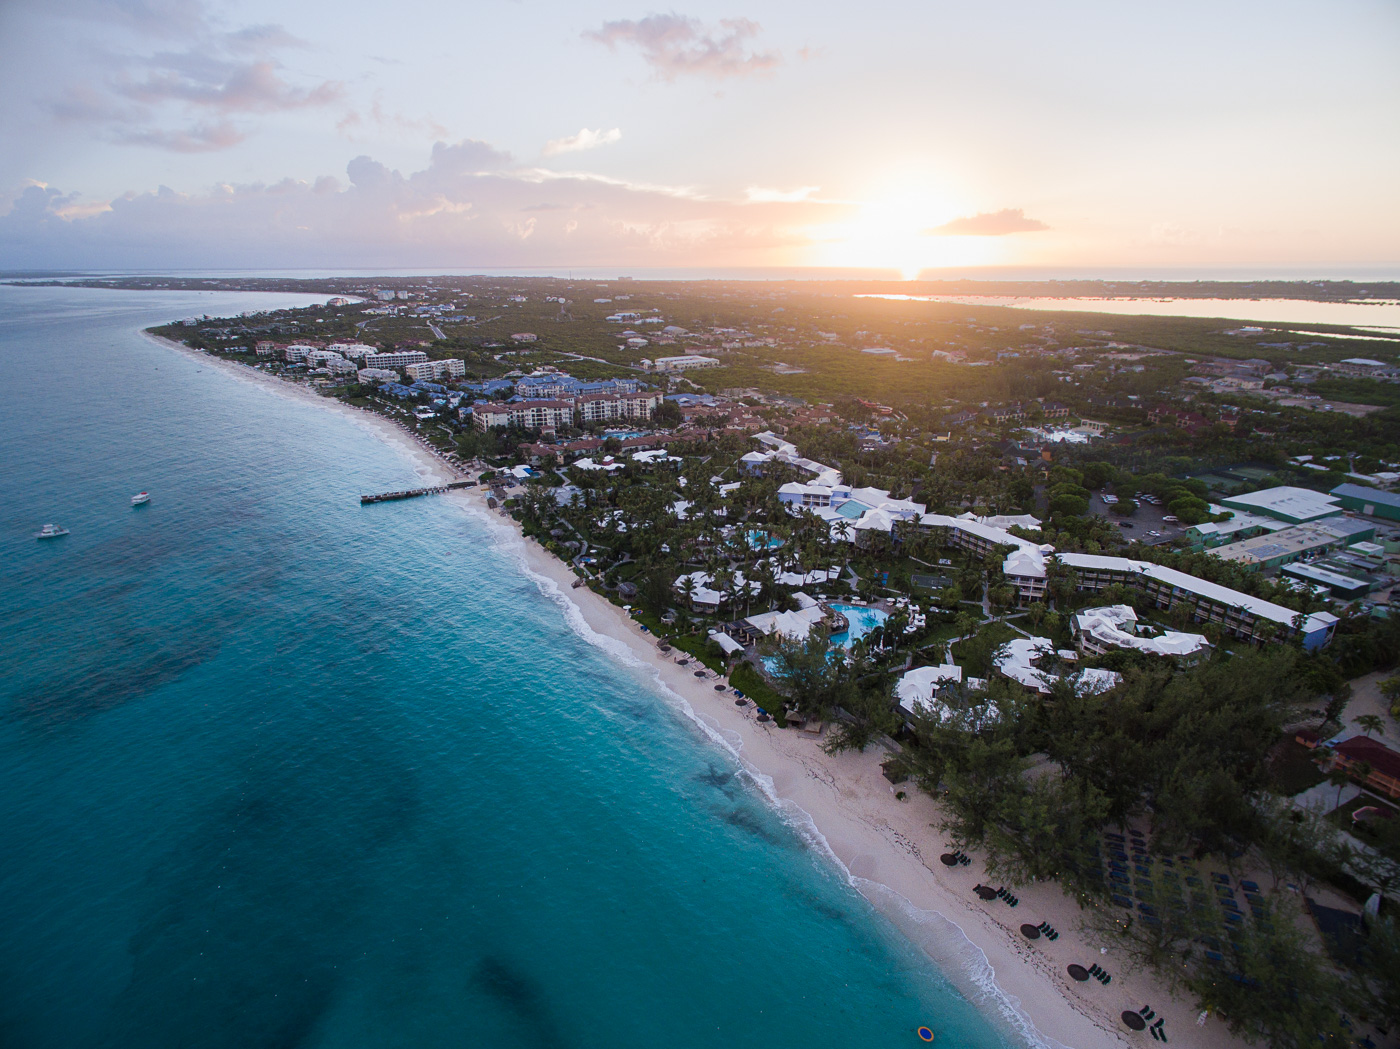 Sunrise over Beaches Resort in Turks and Caicos, as seen from a drone.